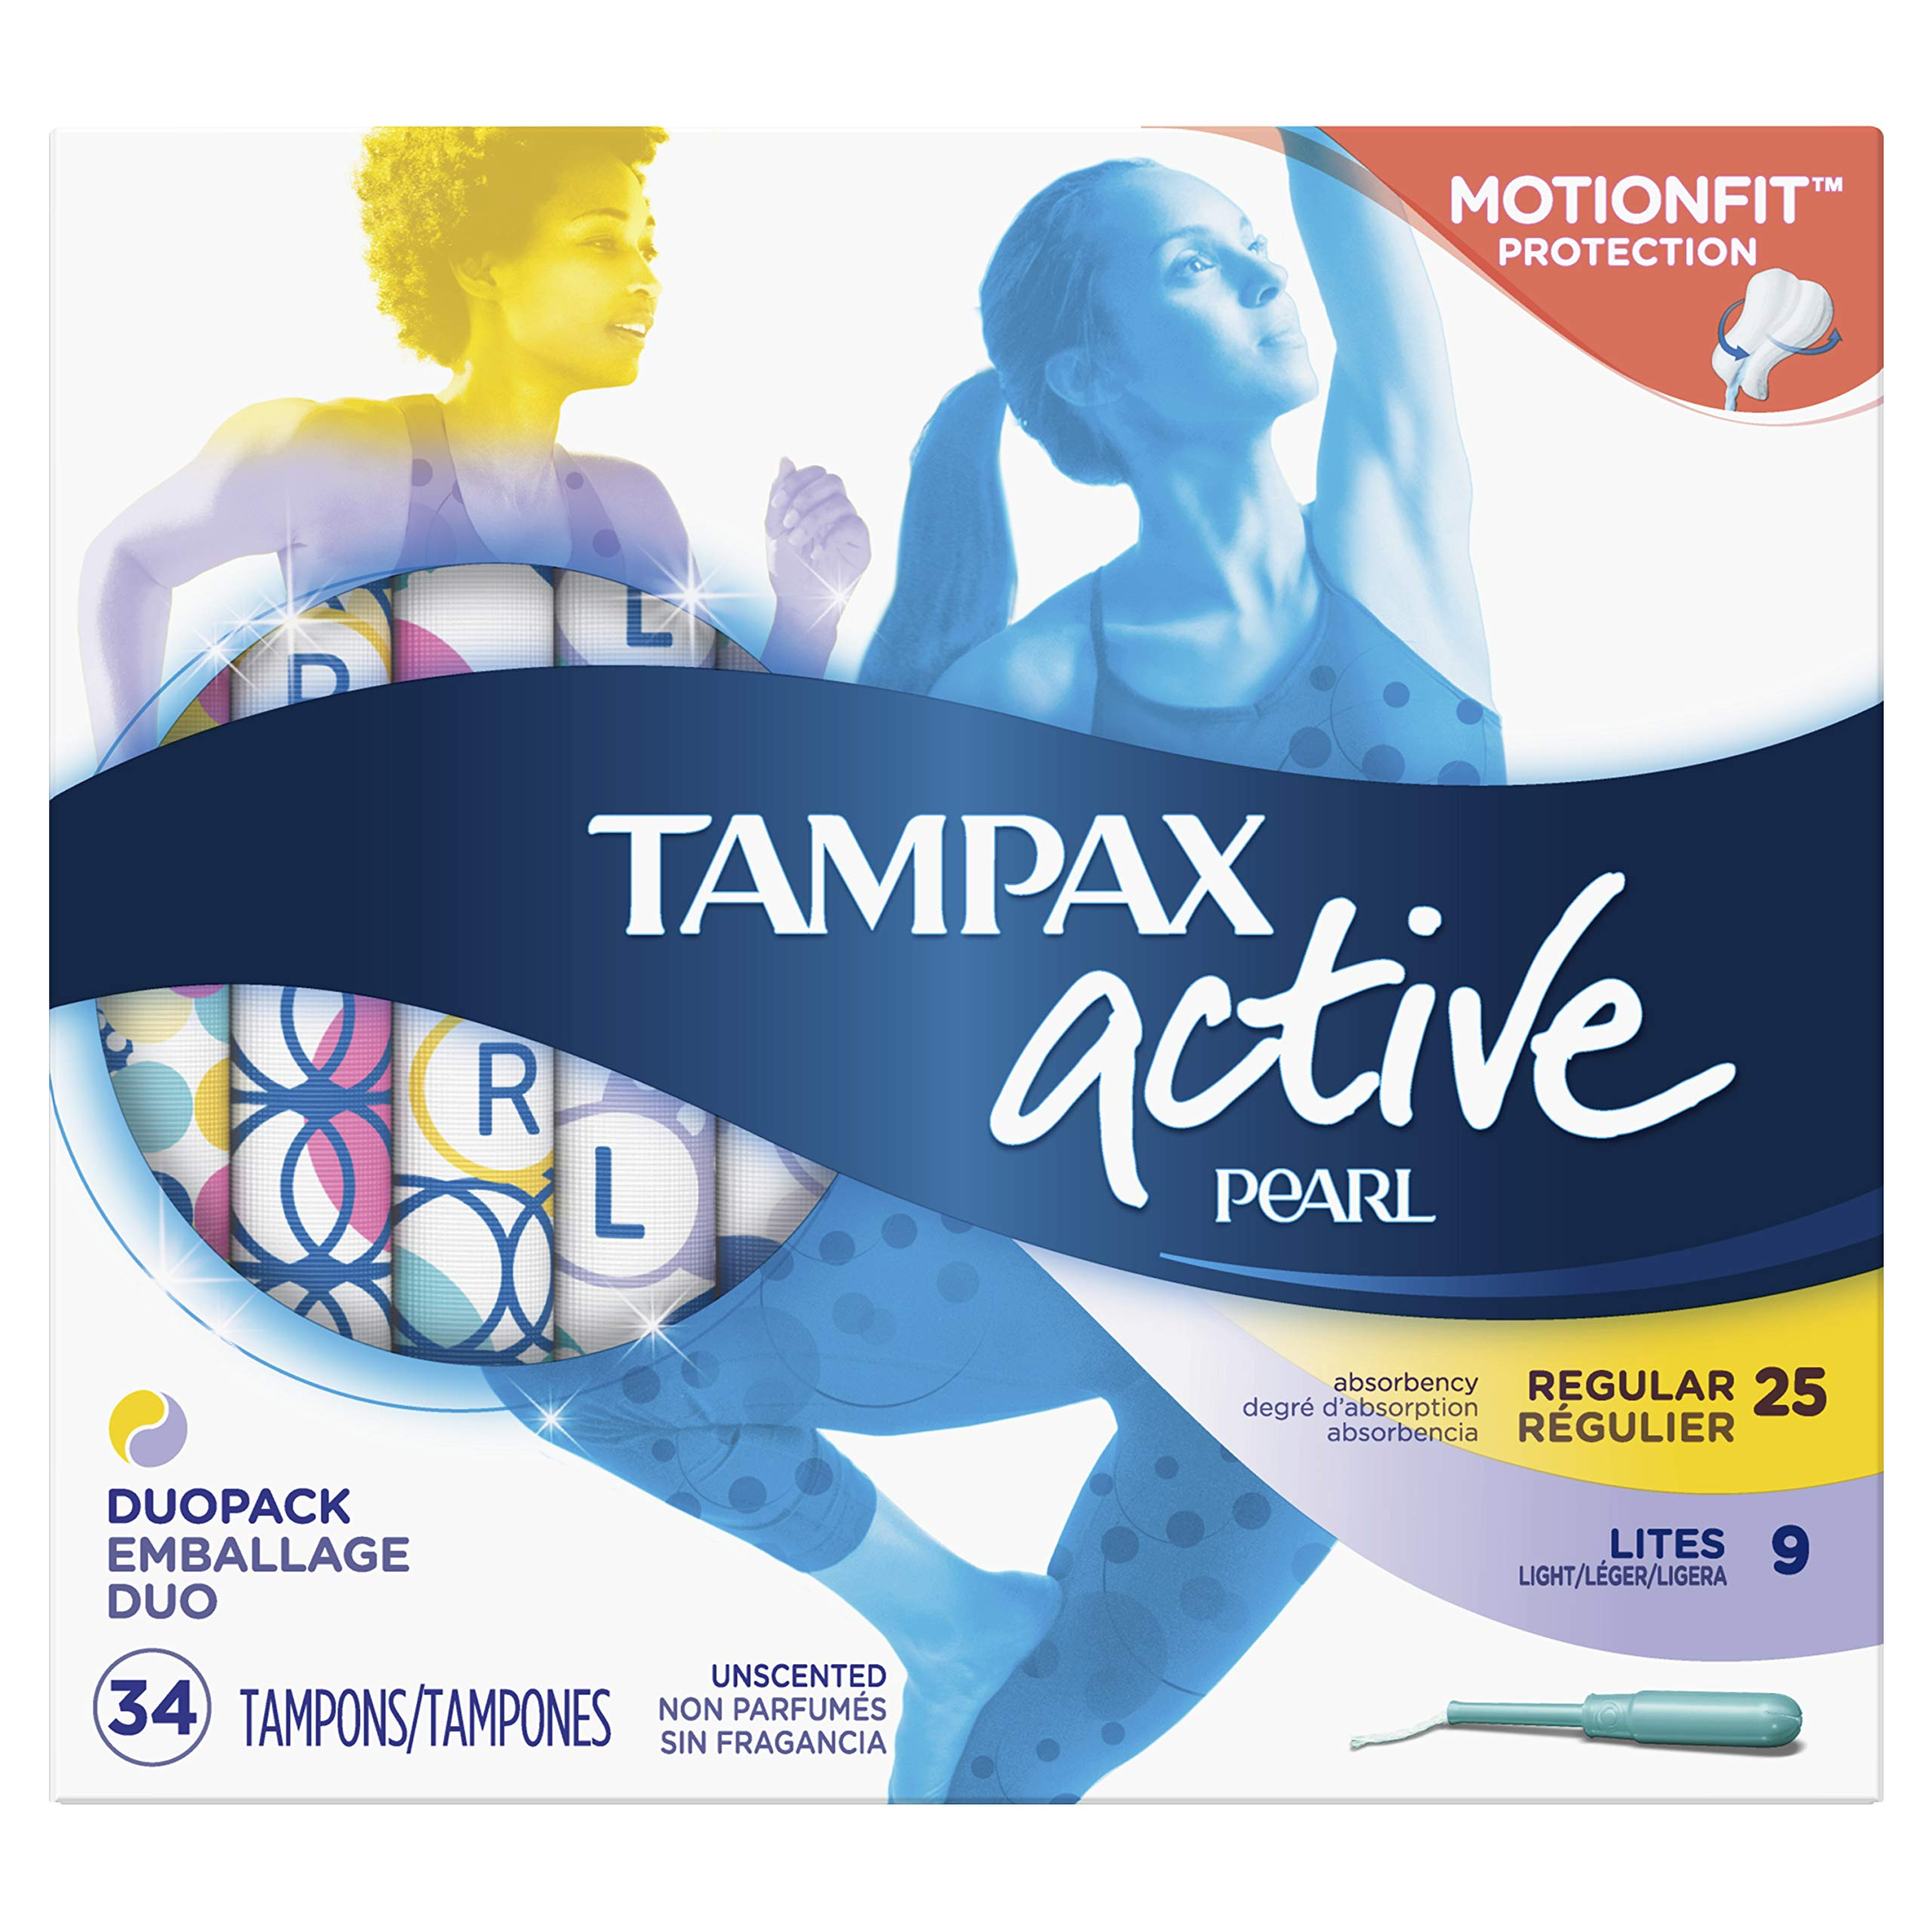 Tampax Pearl Active Plastic Tampons, Light/Regular Absorbency Multipack, Unscented, 34 Count - Pack of 6 (204 Total Count) (Packaging May Vary) by Tampax